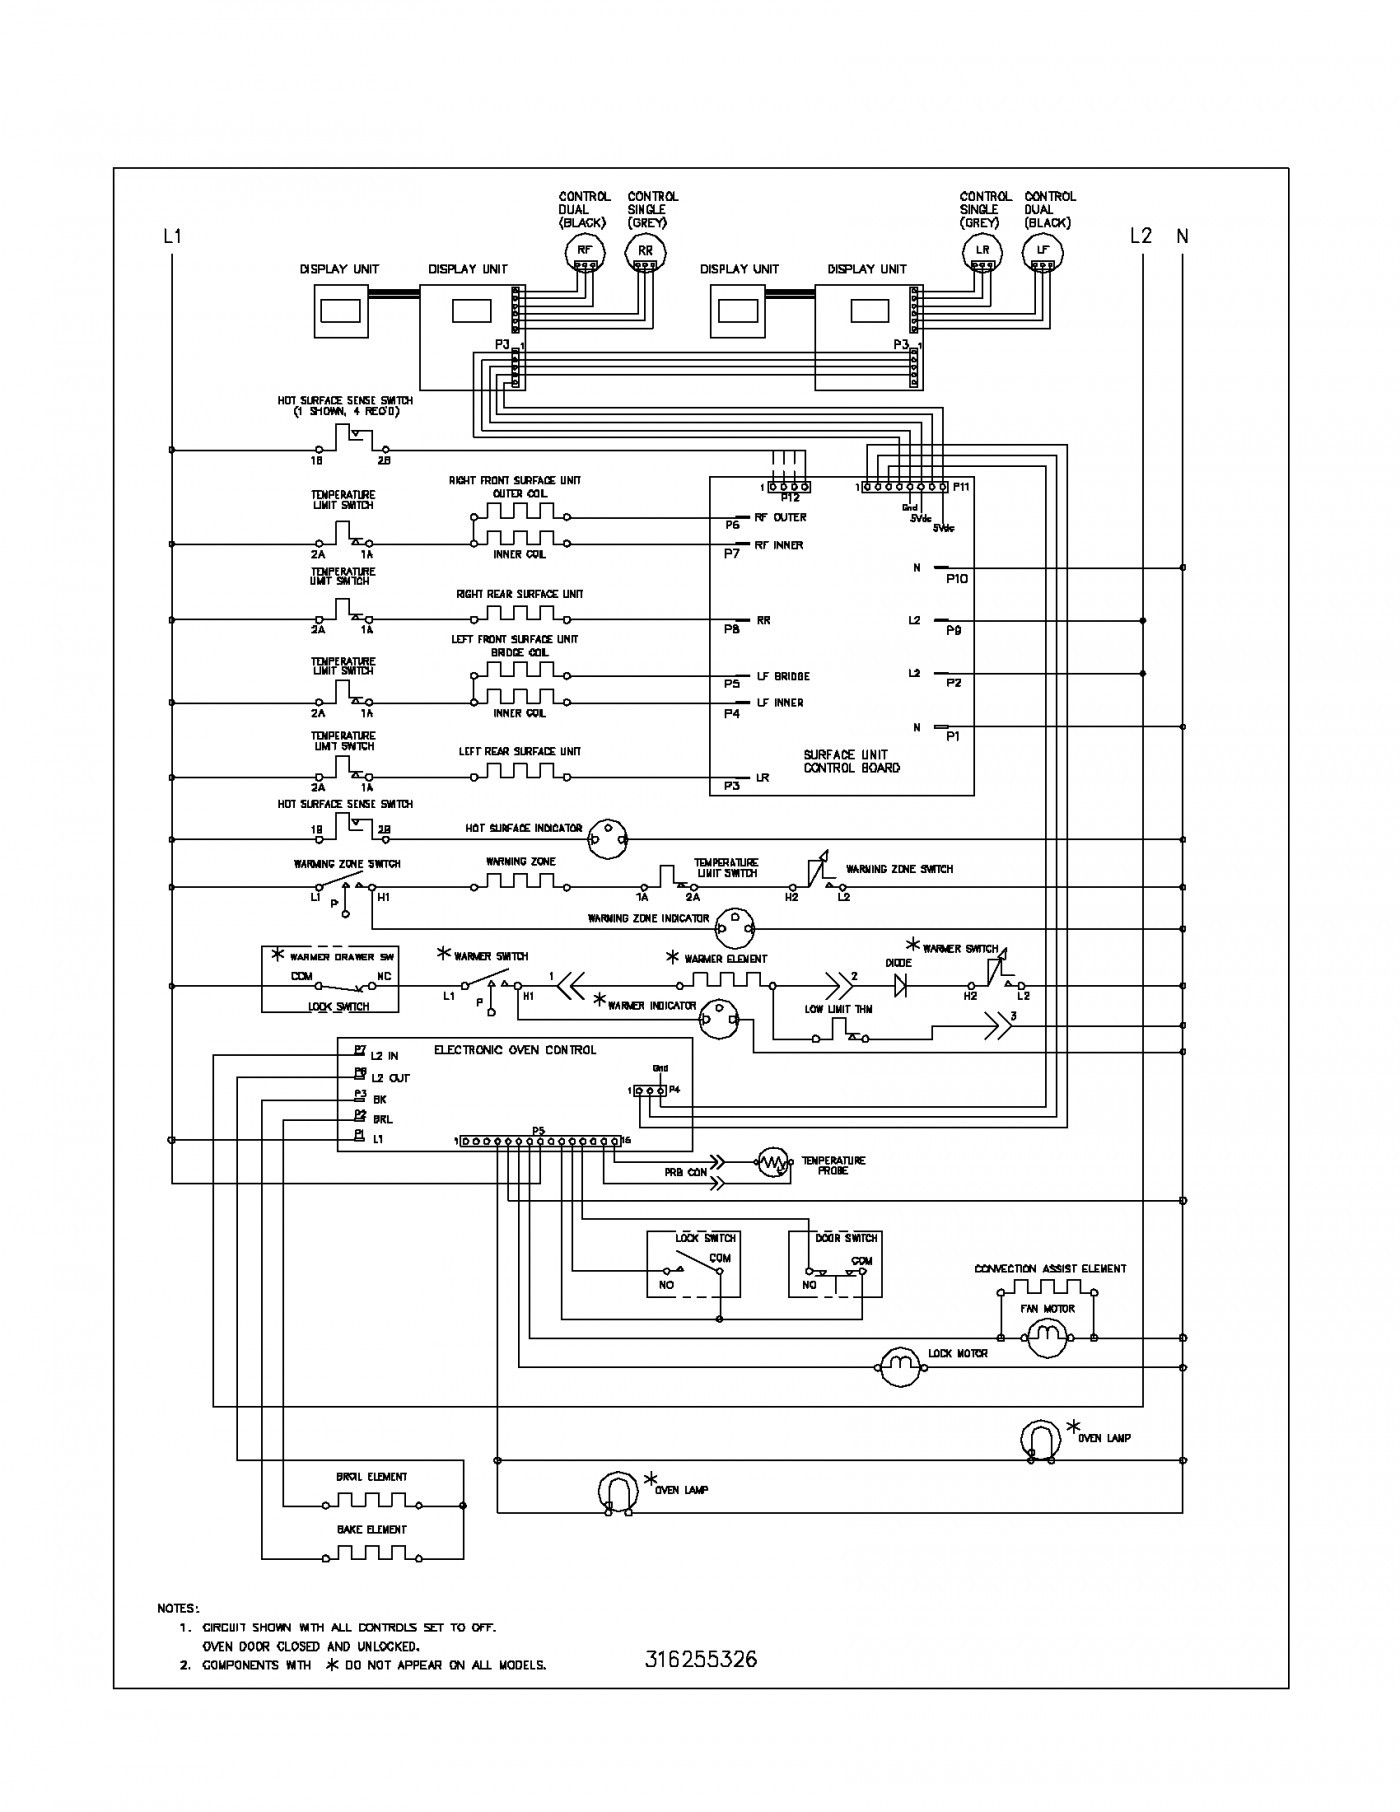 Mitsubishi 4g18 factory service manual